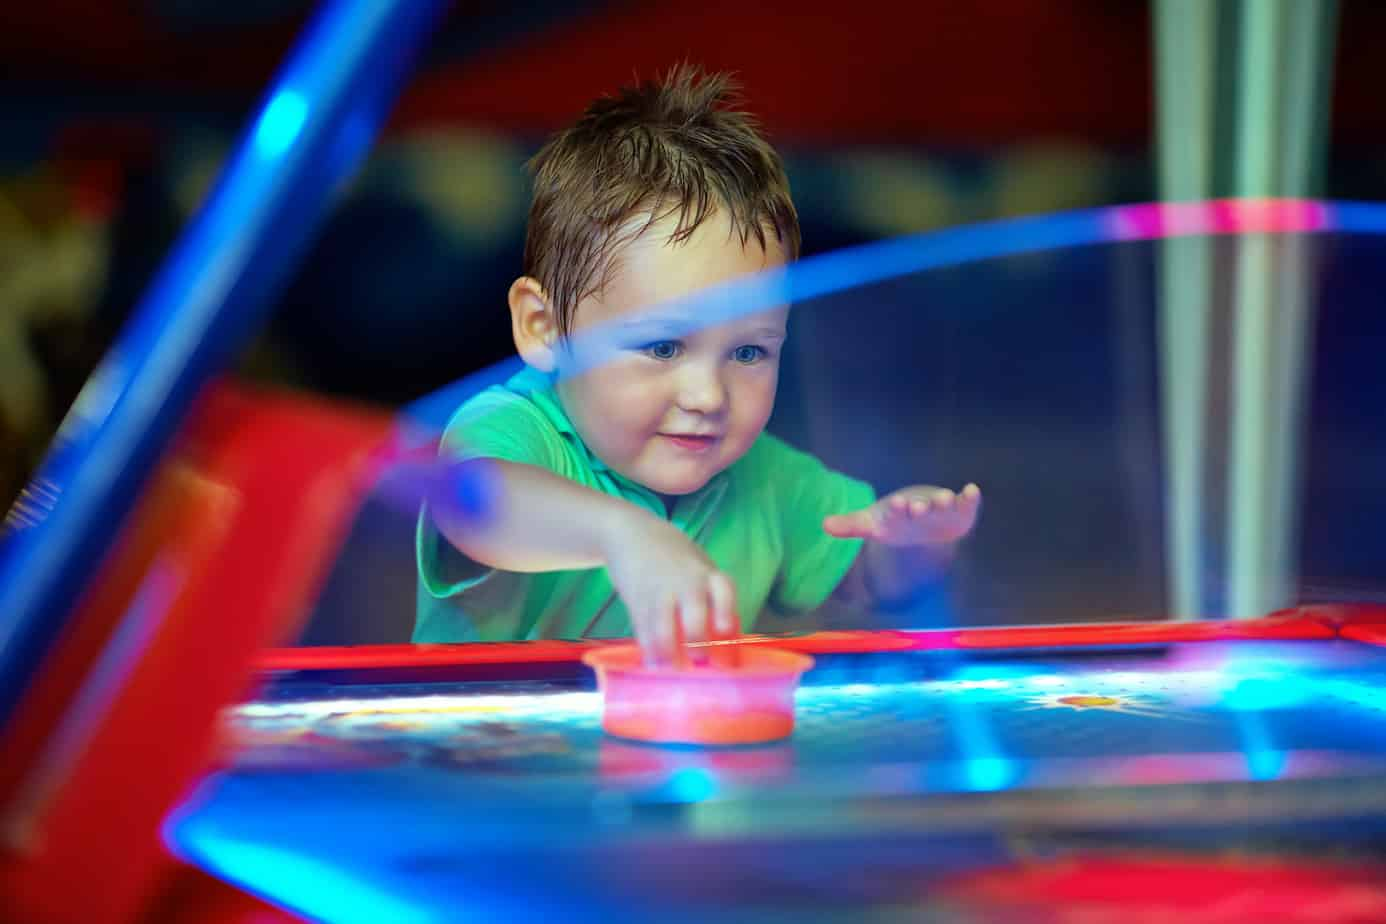 The Best Air Hockey Tables For Your Kids - Our Top 5